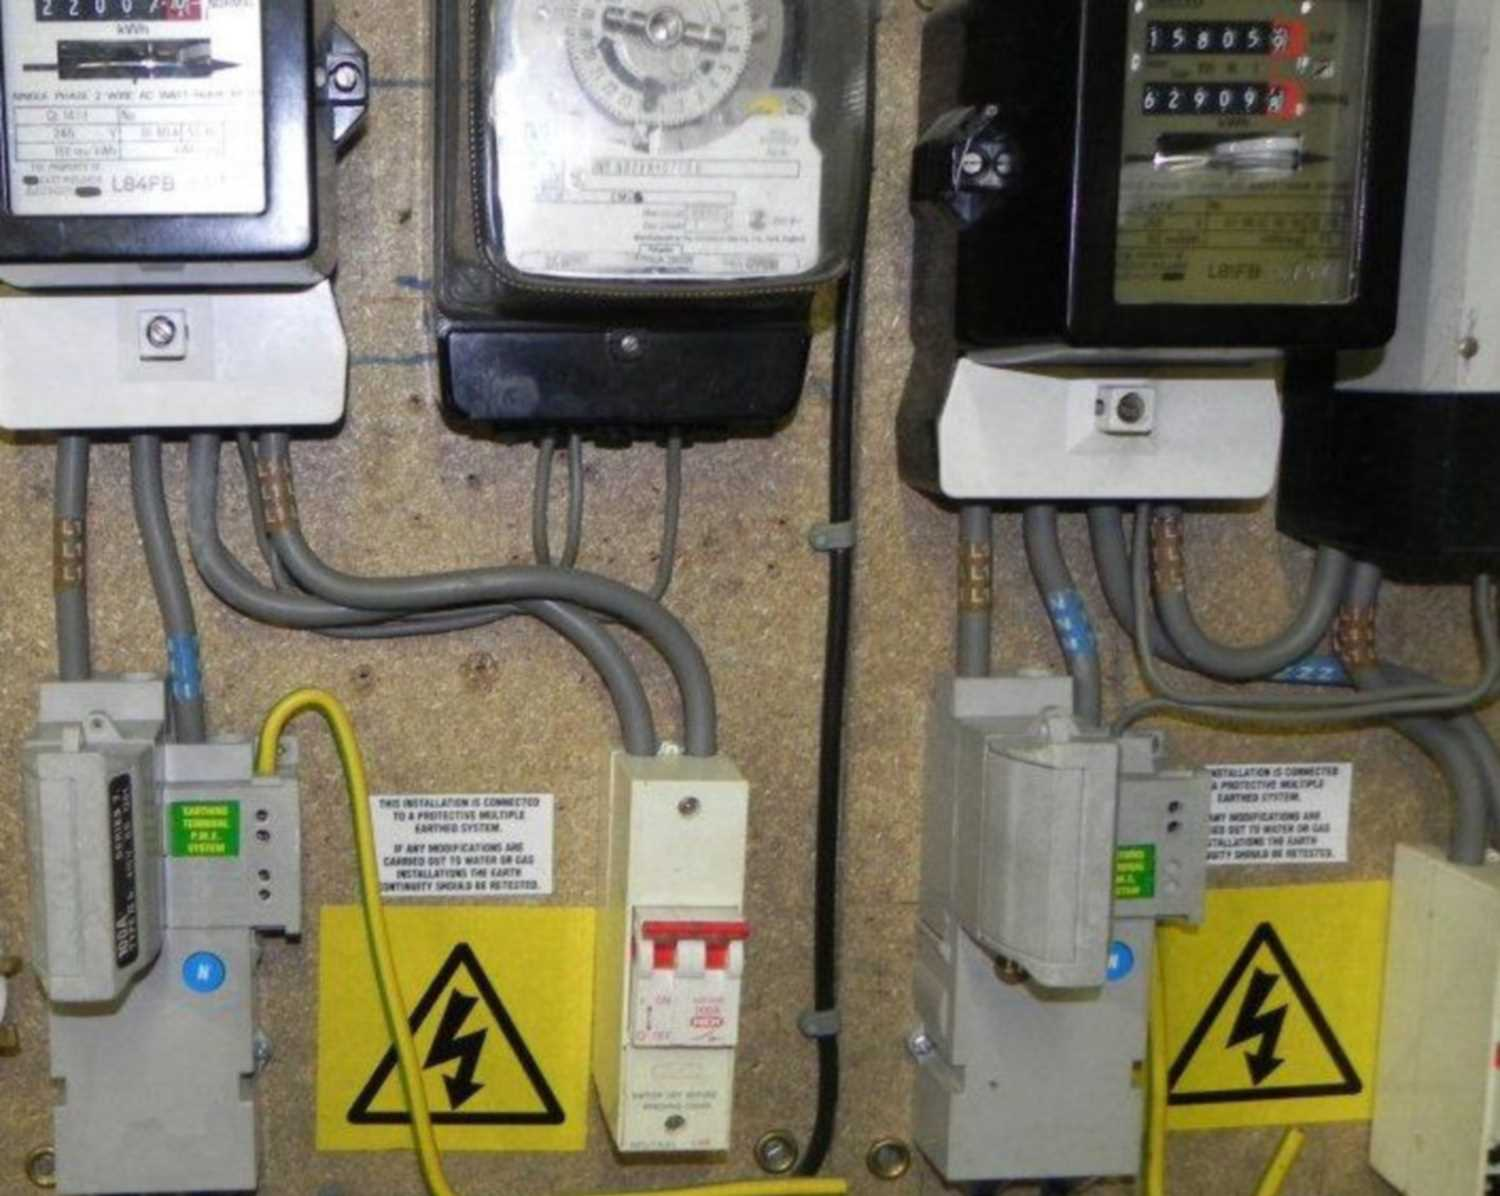 Top 10 Switch Wiring Diagram Download Instruction Wiring A 3 Way Switch also Smart Home Automation additionally Products3c1 together with Wiring The Raspberry Pi Security System To Home Api moreover 25 Super puters That Fill Entire Rooms. on house wiring